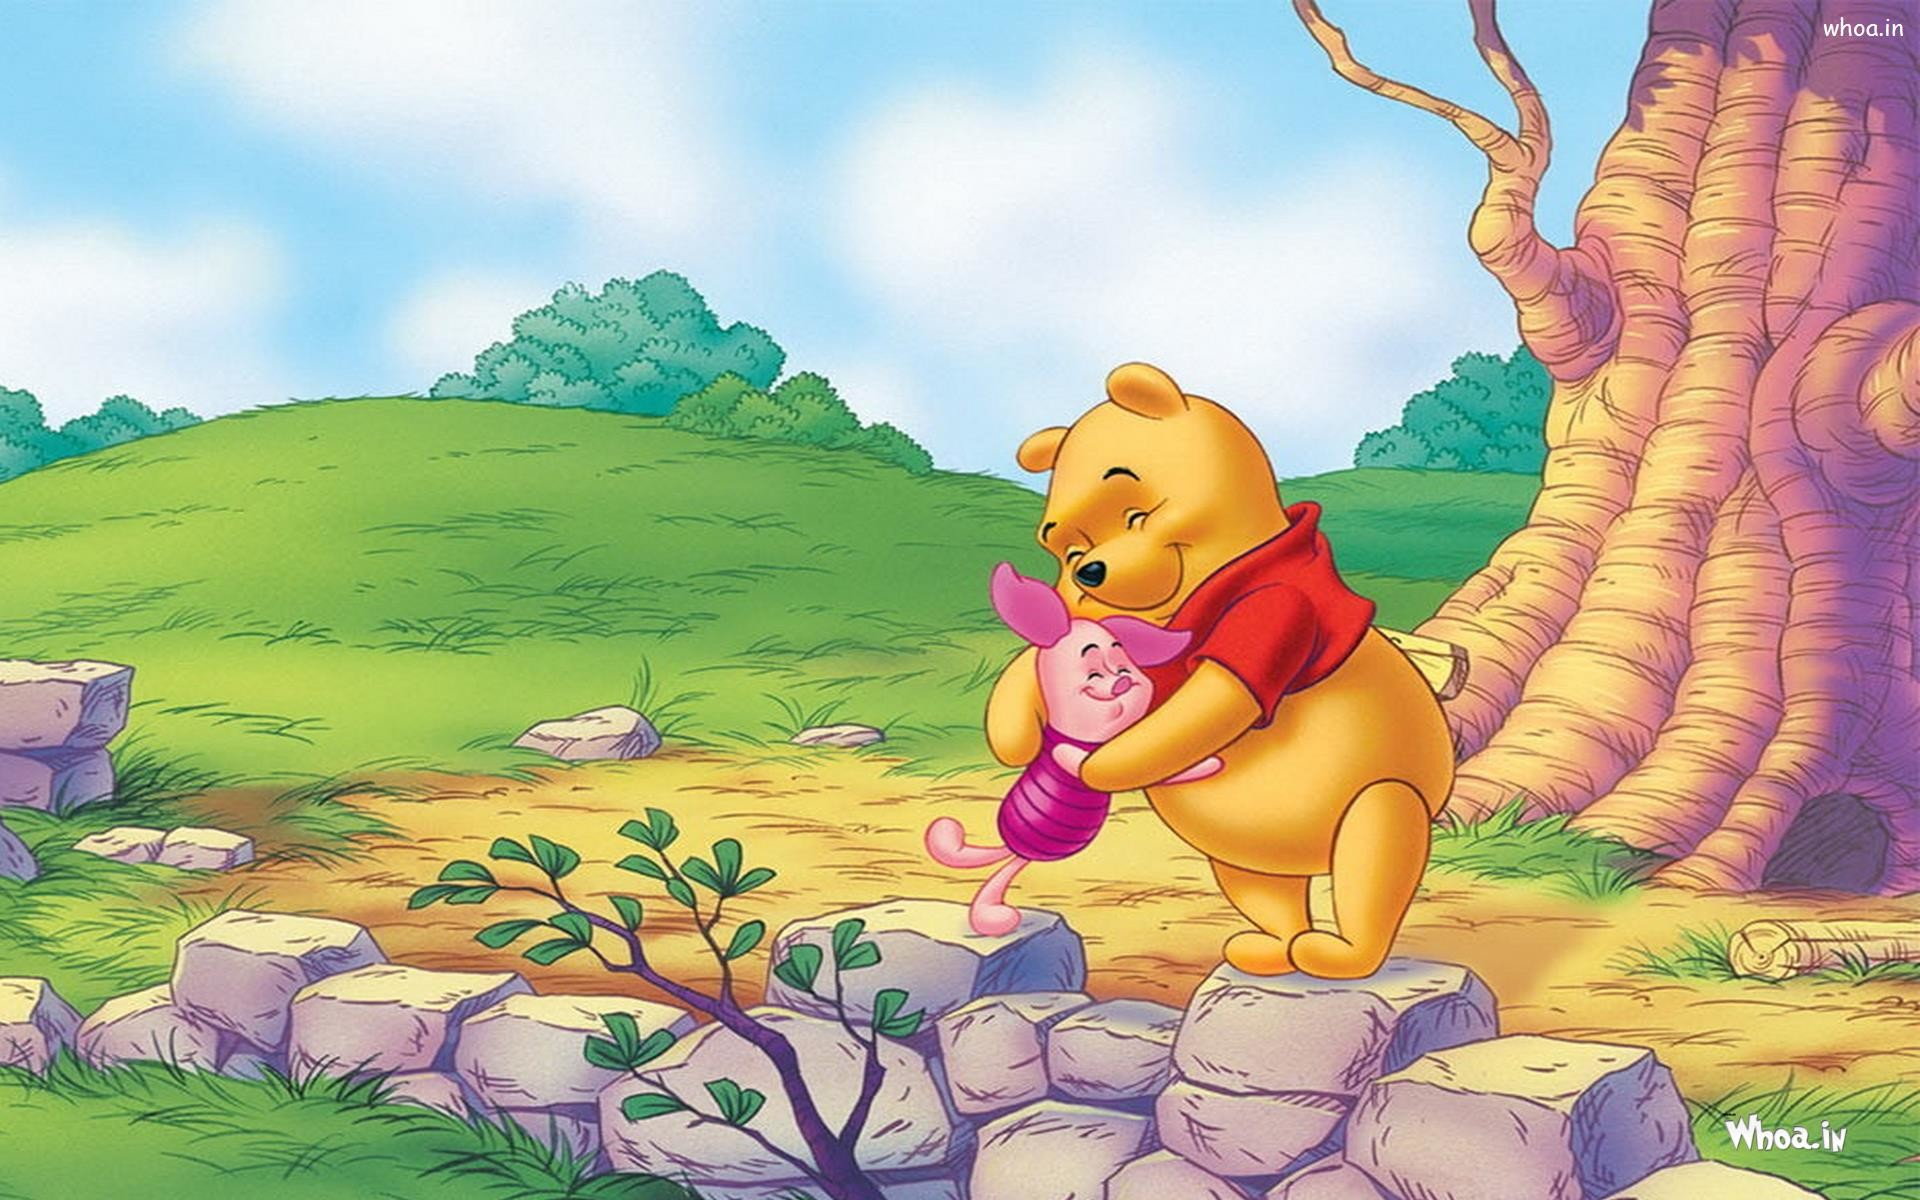 … Winnie the Pooh Hug to Piglet Animated Wallpaper …